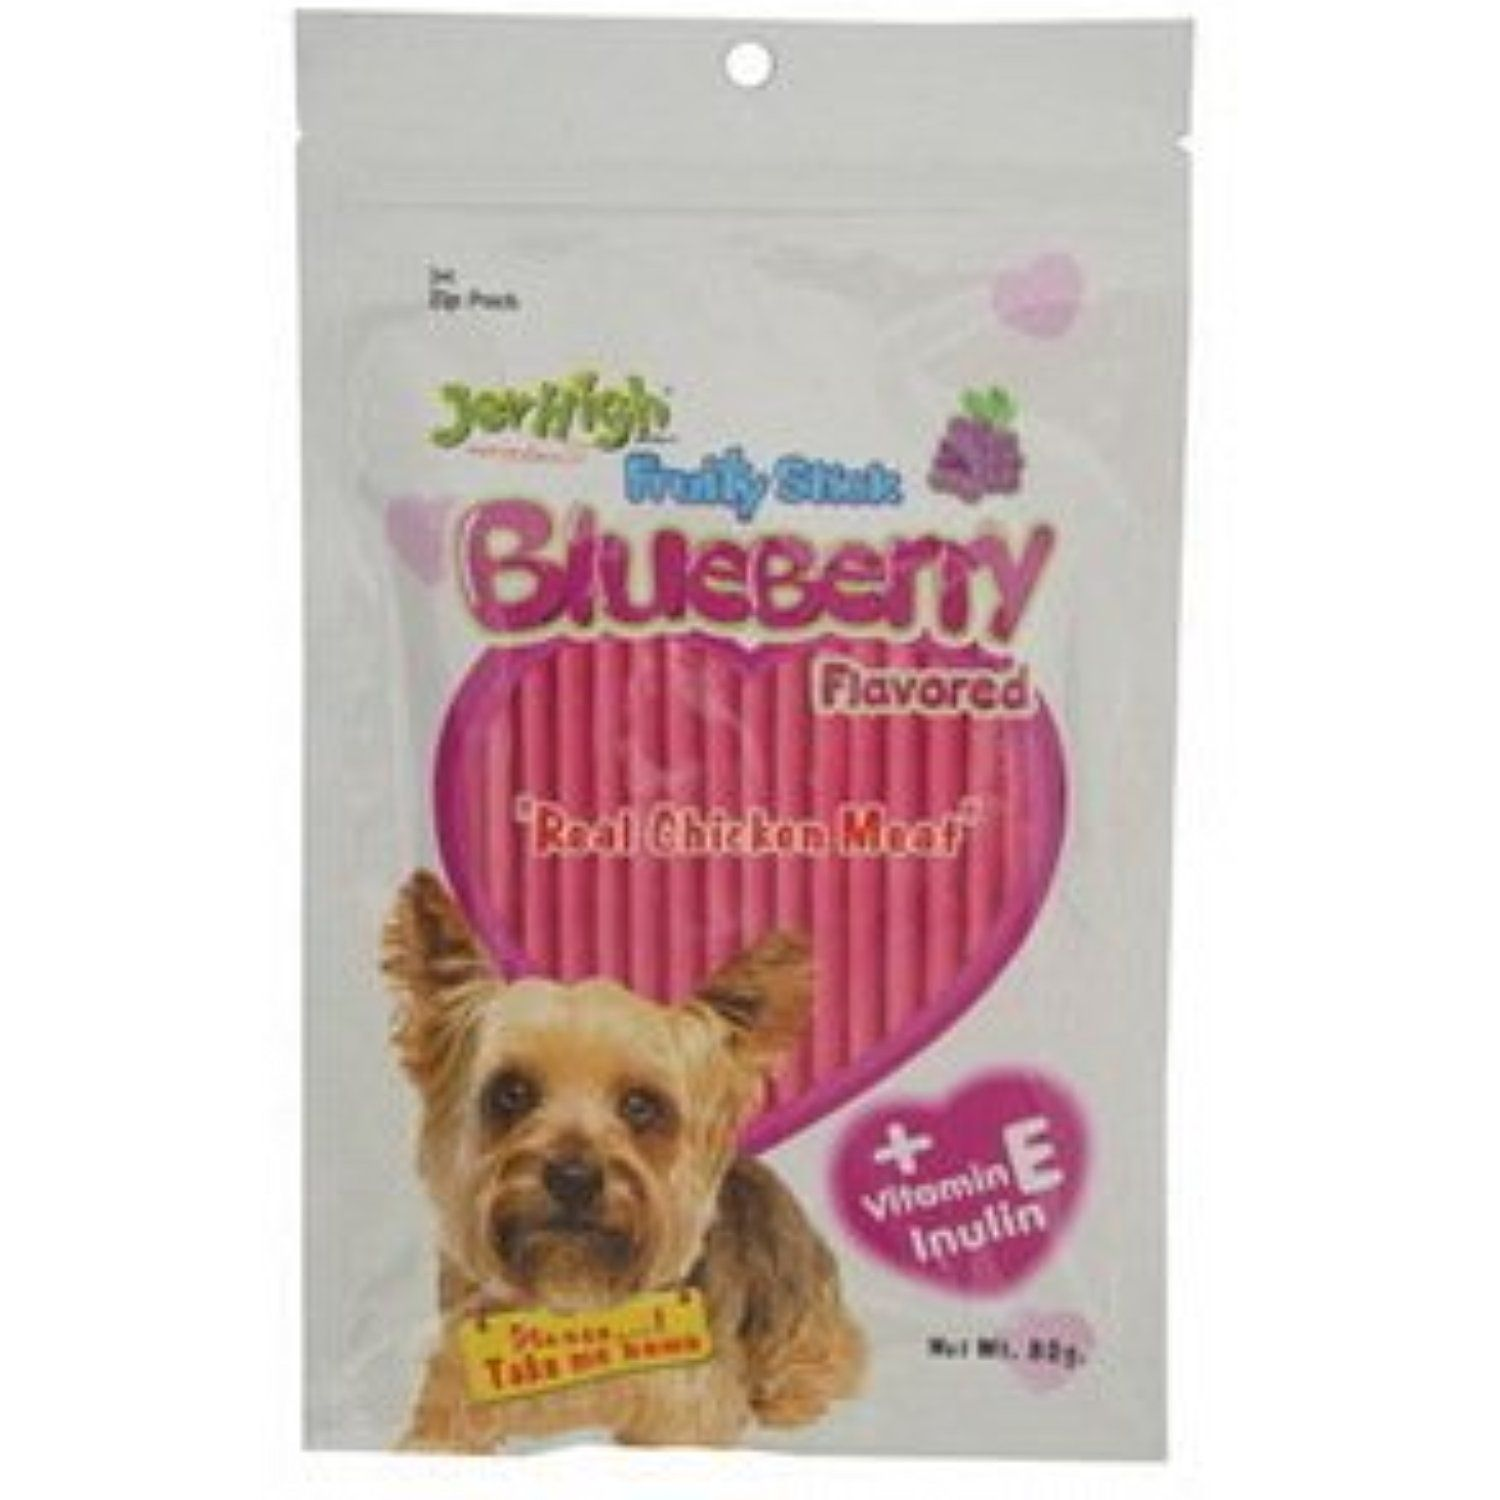 Jerhigh Snack Blueberry Stick 80g Dog 80g New Made From Thailand